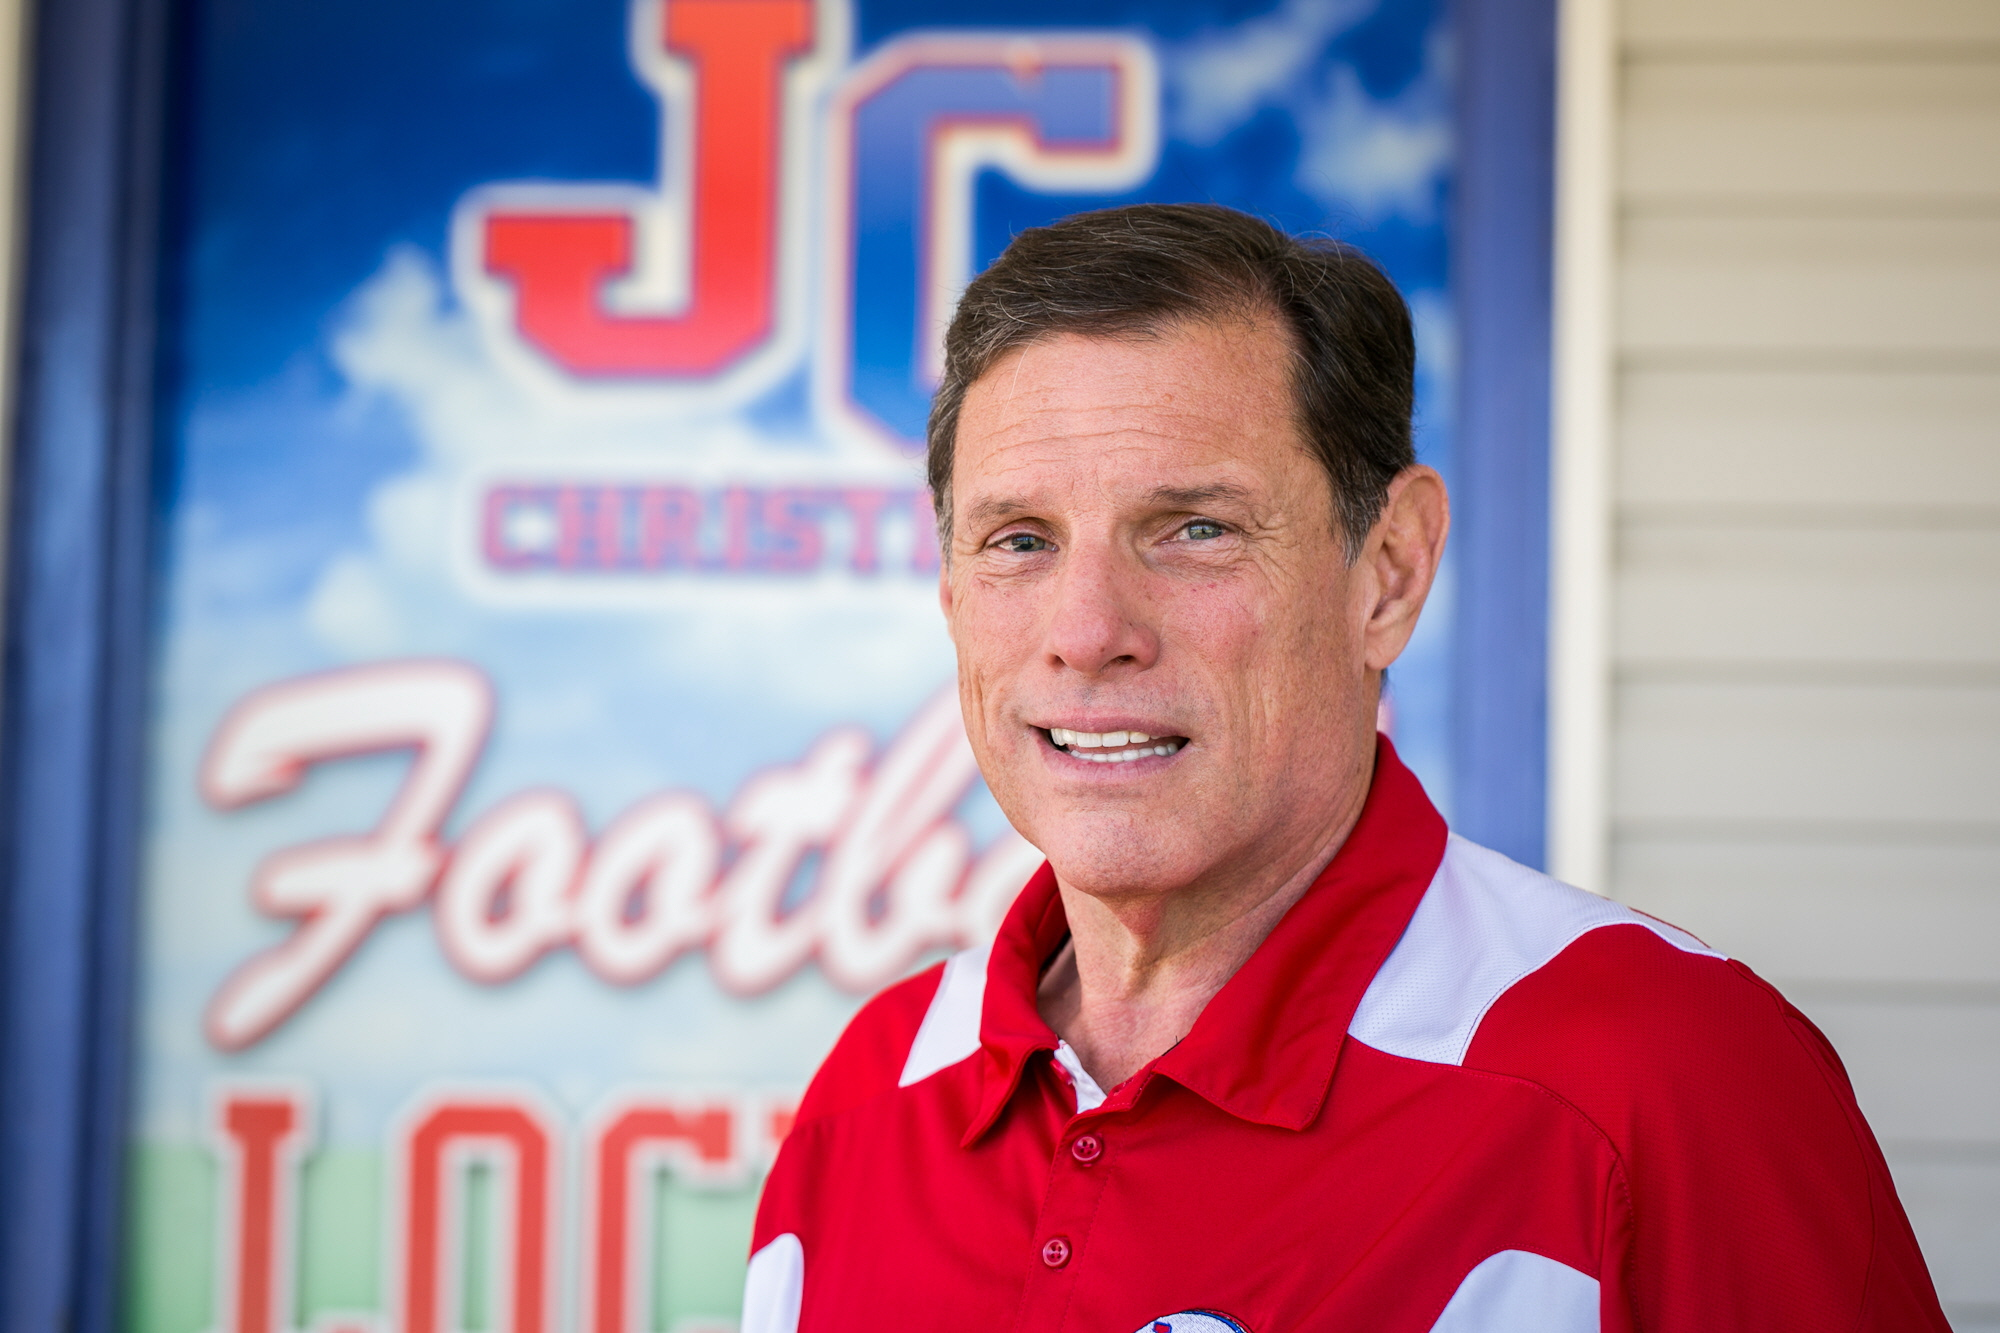 12/18/12 3:35:38 PM -- River Ridge, LA, U.S.A -- Our All USA coach of the year is J.T. Curtis of John Curtis Christian in River Ridge, La., near New Orleans. -- Photo by Paul Morse, Freelance ORG XMIT: PM 42838 John Curtis 12/18/2012 [Via MerlinFTP Drop]